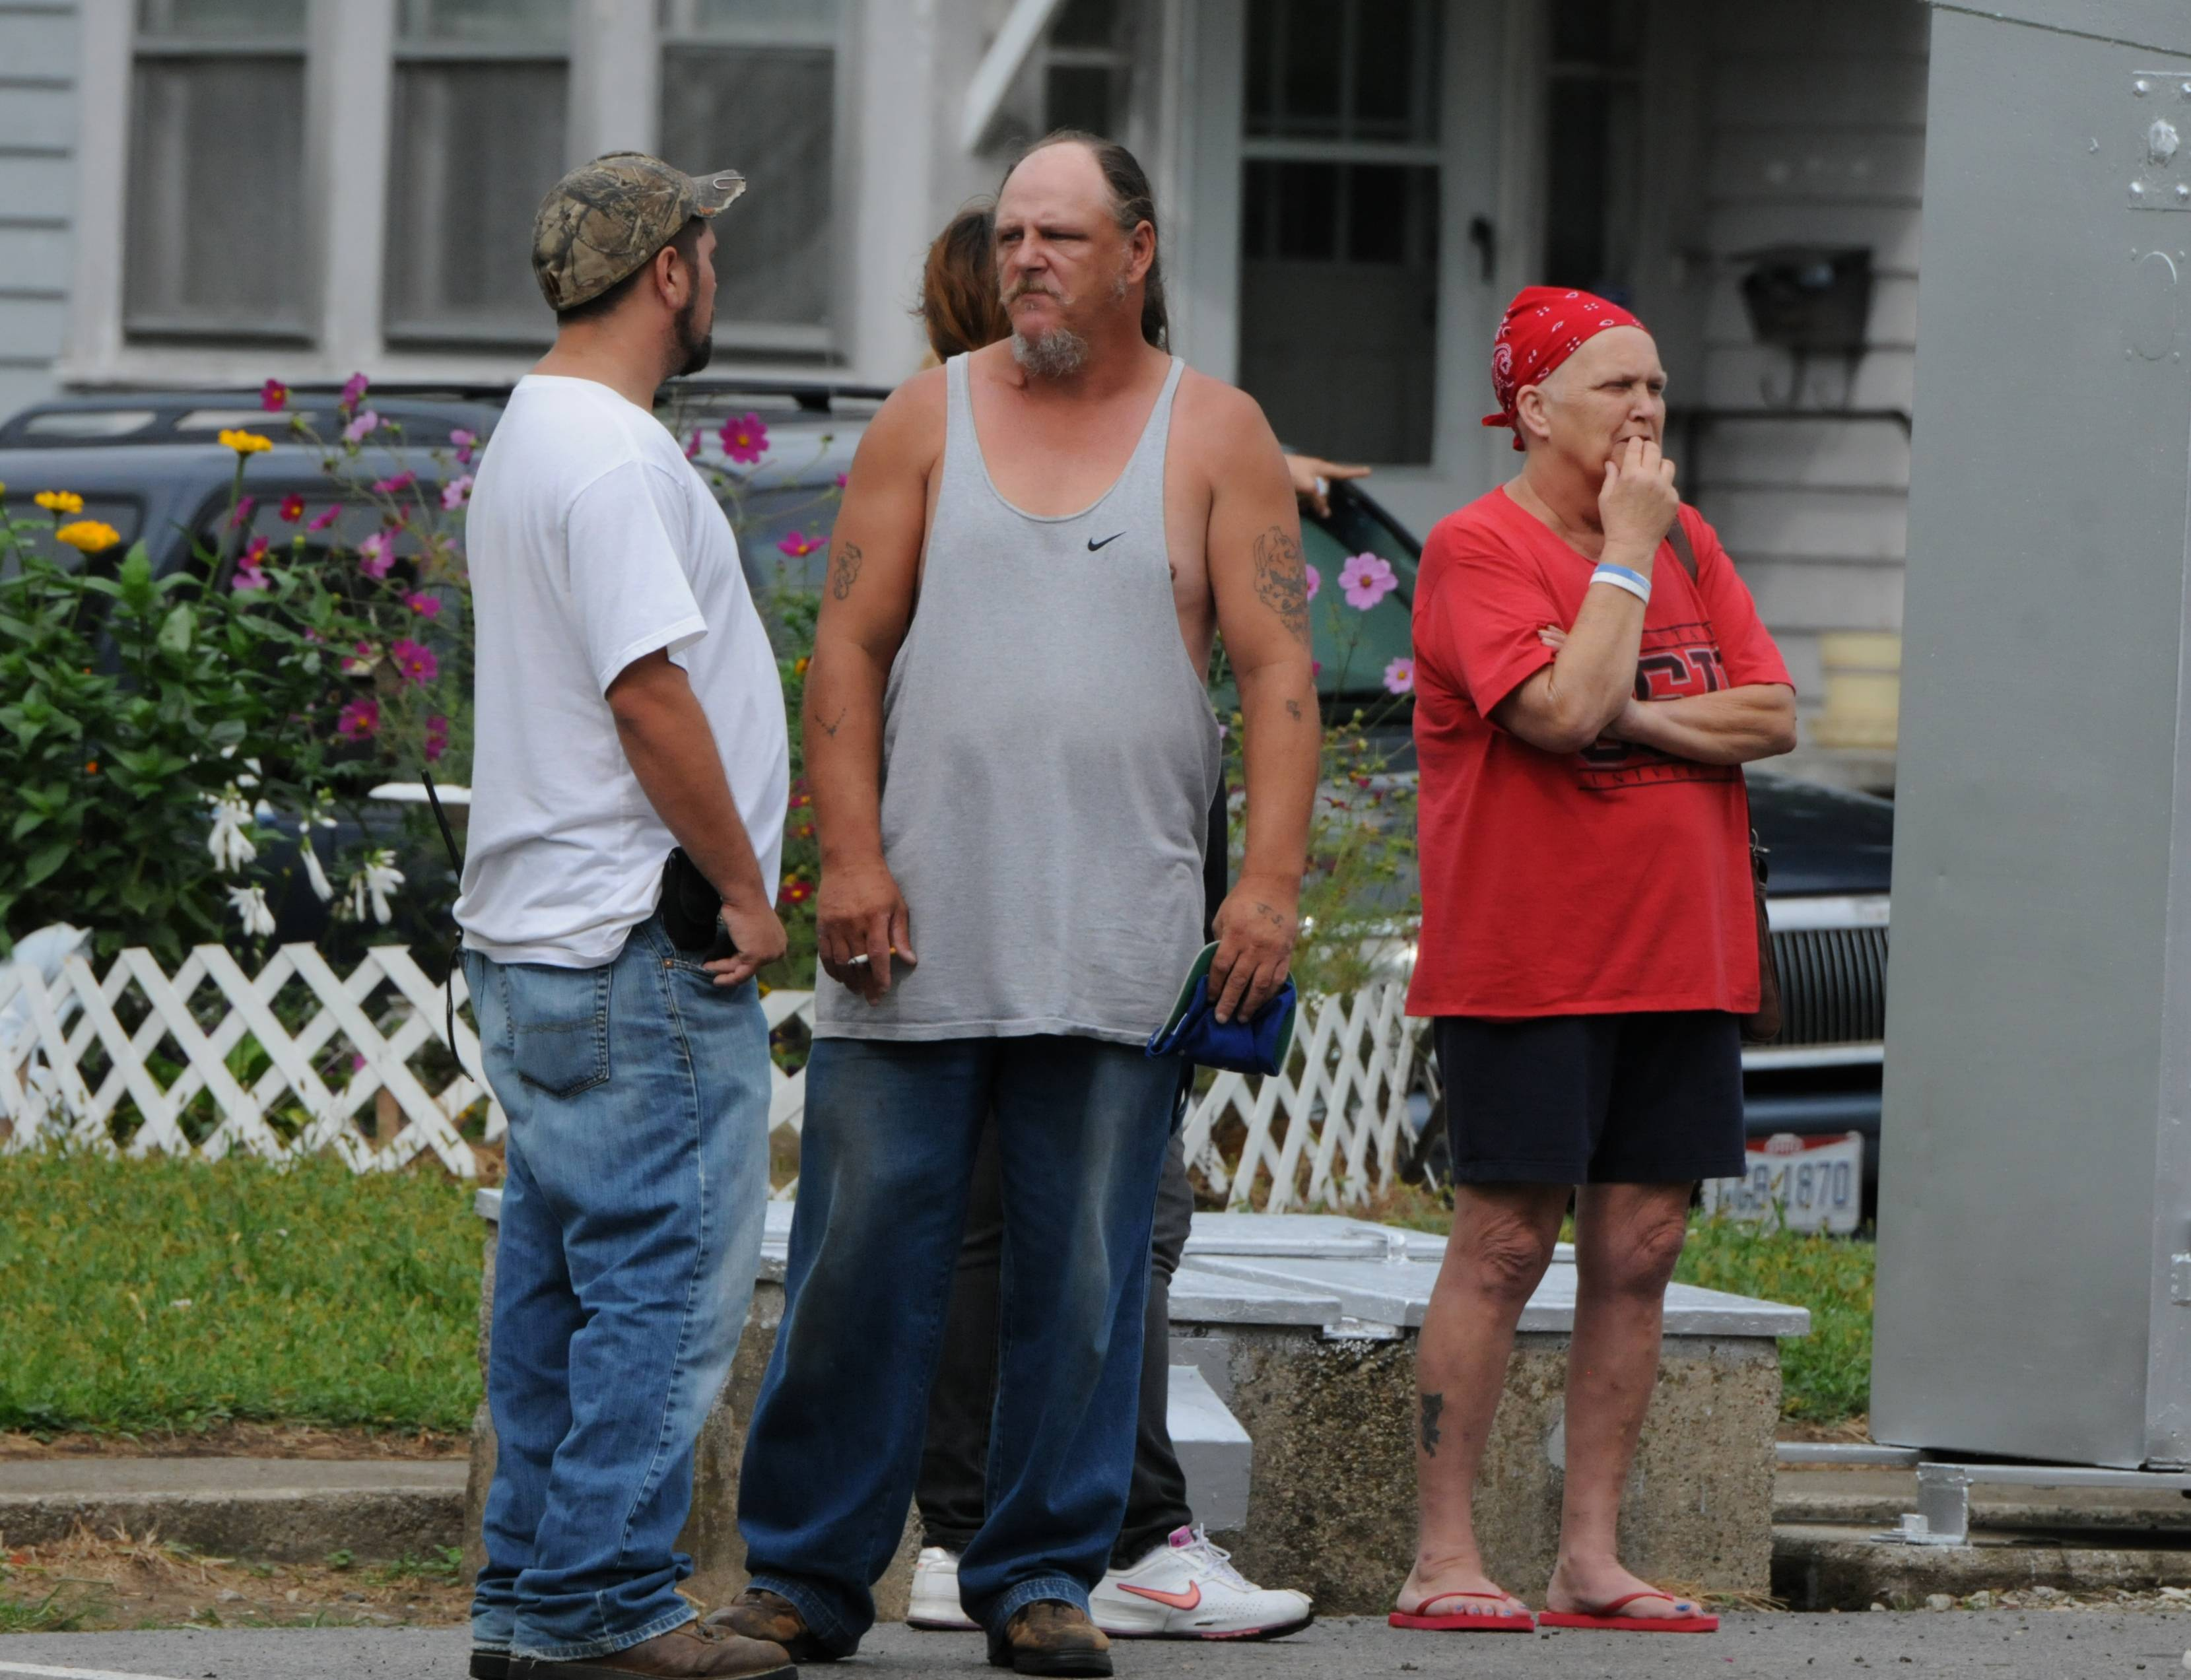 Residents look on as police investigate a home in Bucyrus, Ohio, where one of four men were found beaten to death Monday.